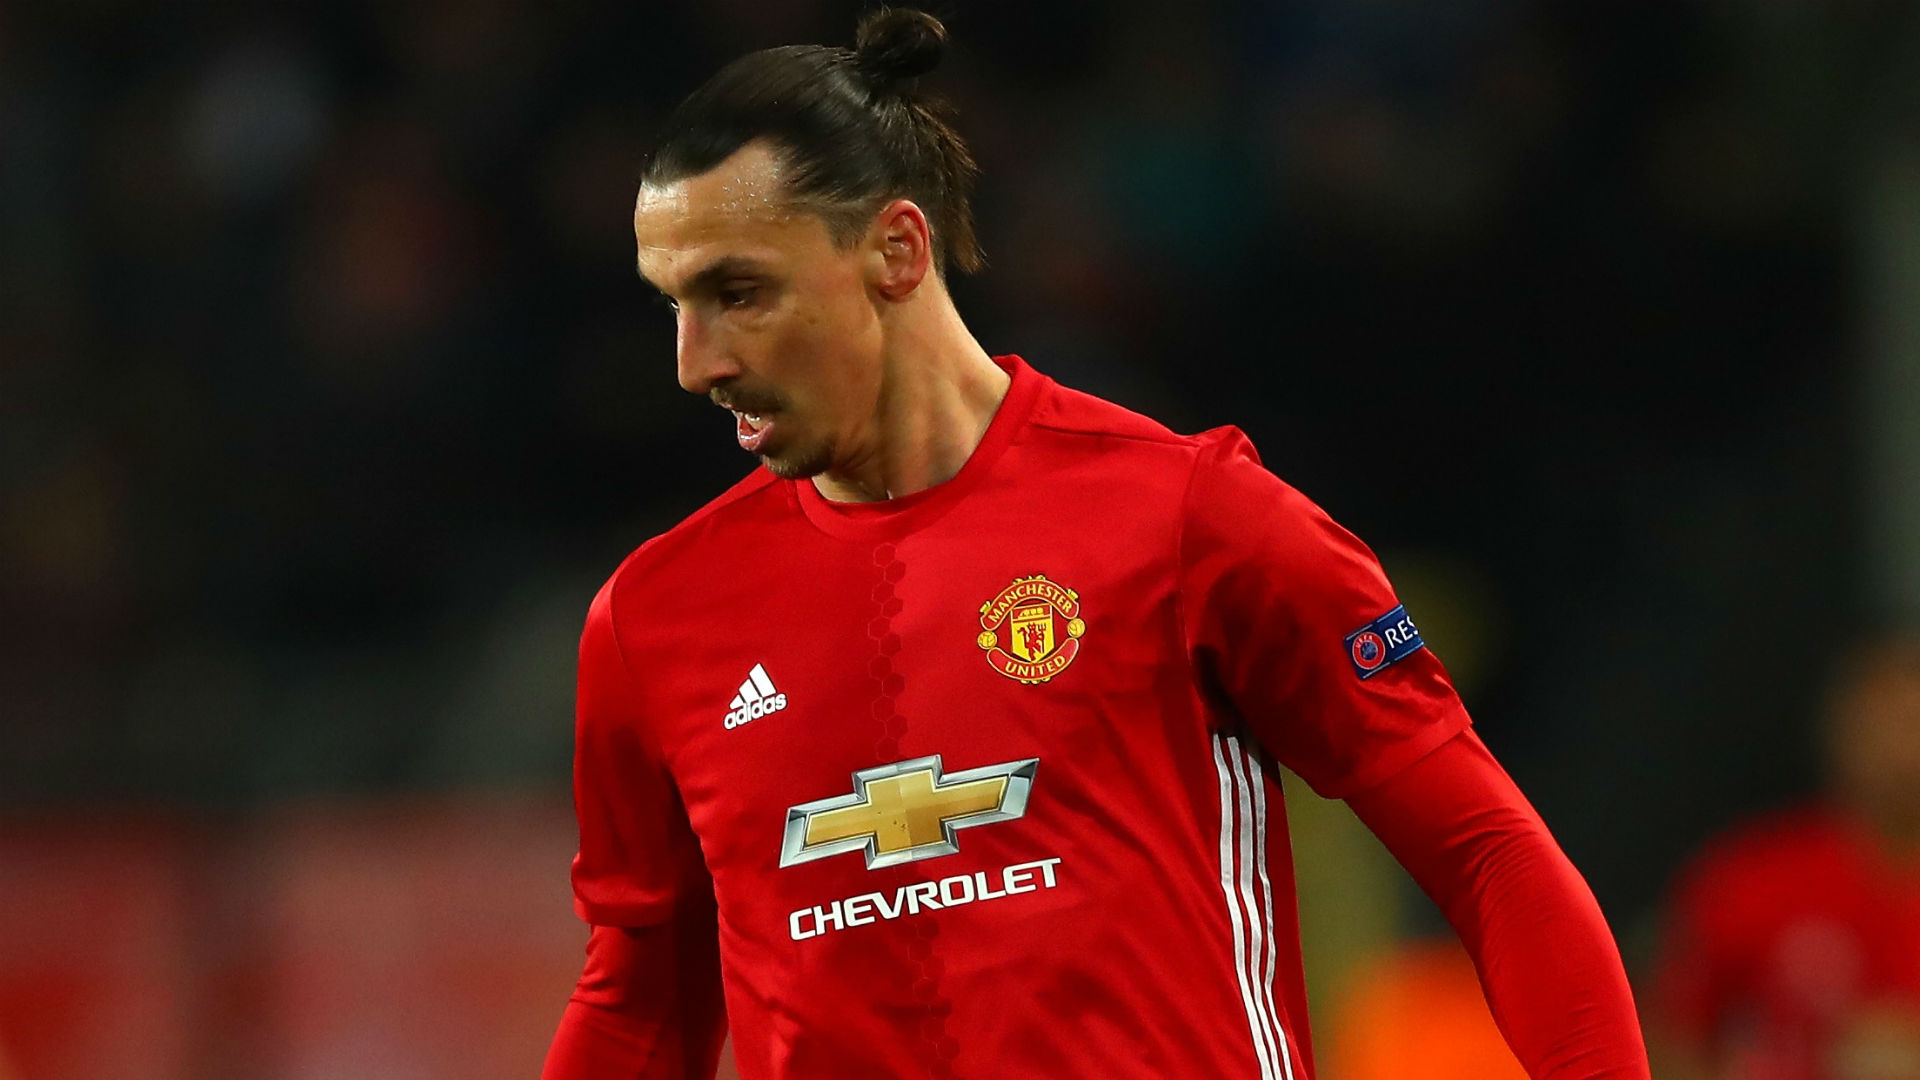 Gary Neville: How Manchester United can cope without Zlatan Ibrahimovic